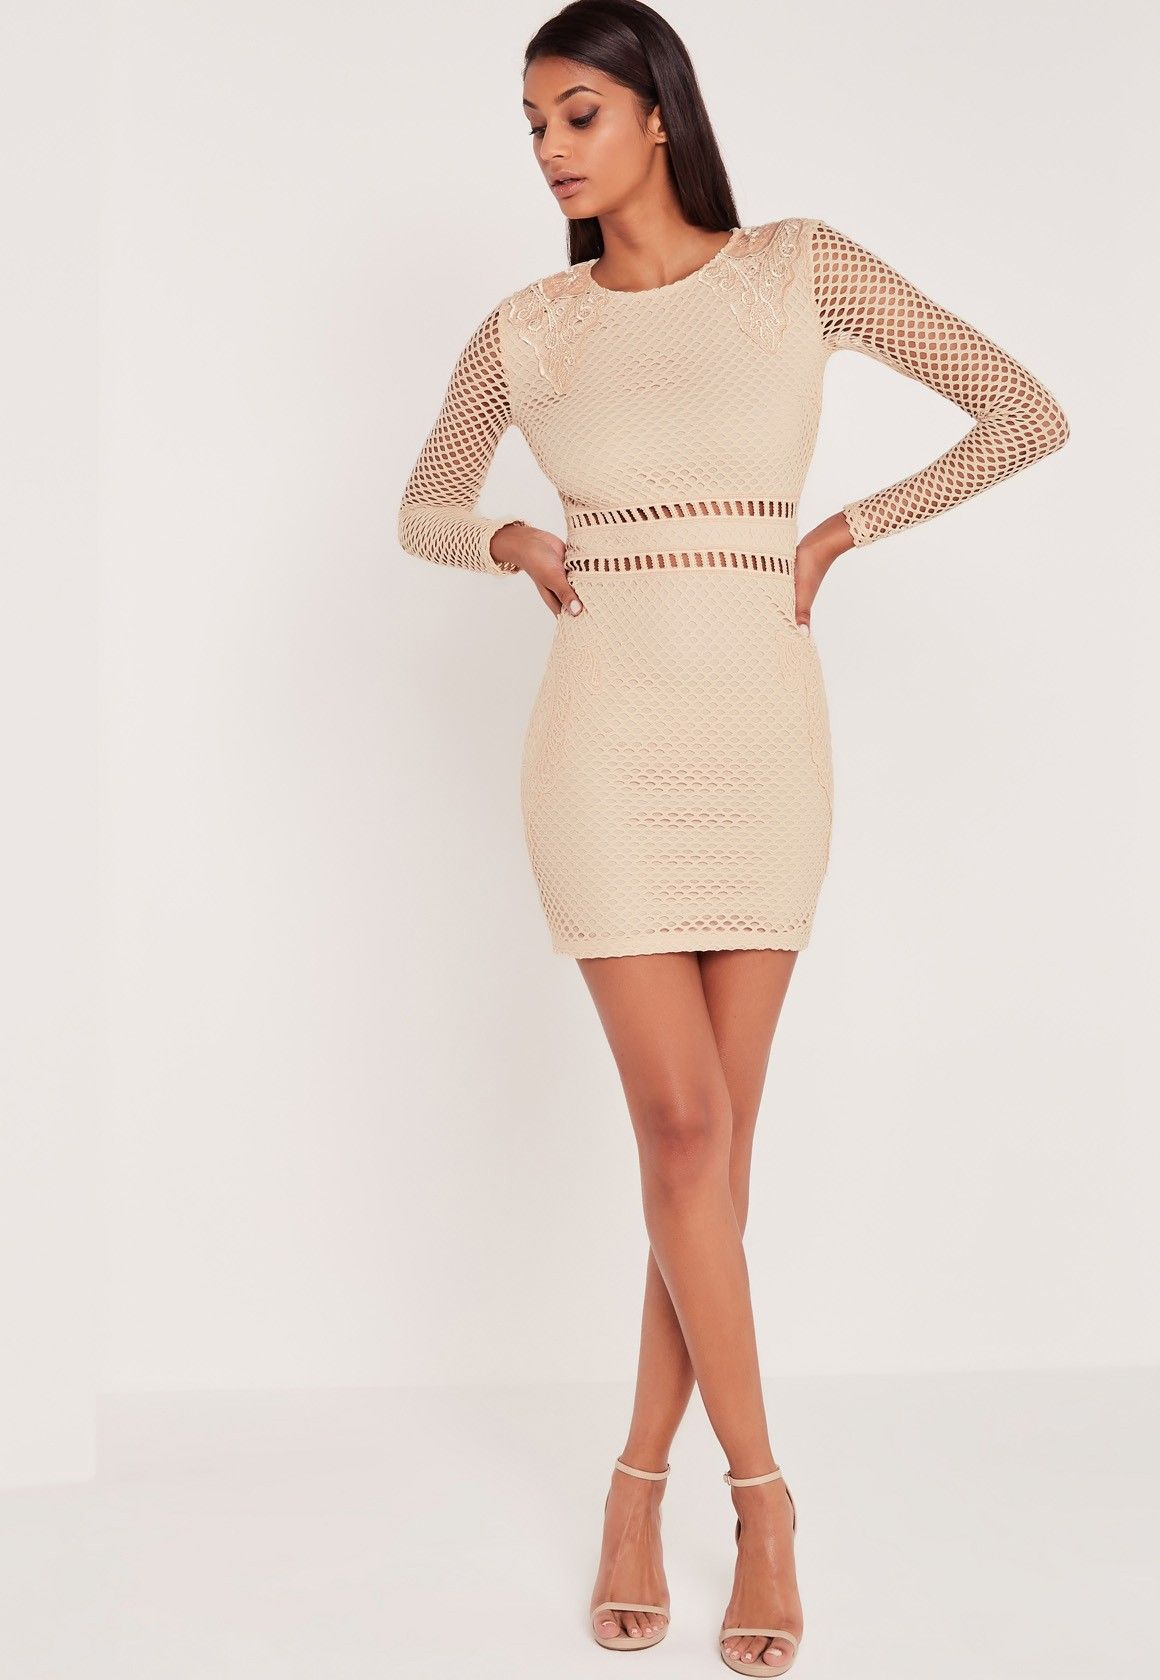 Suzy scallop lace bodycon dress